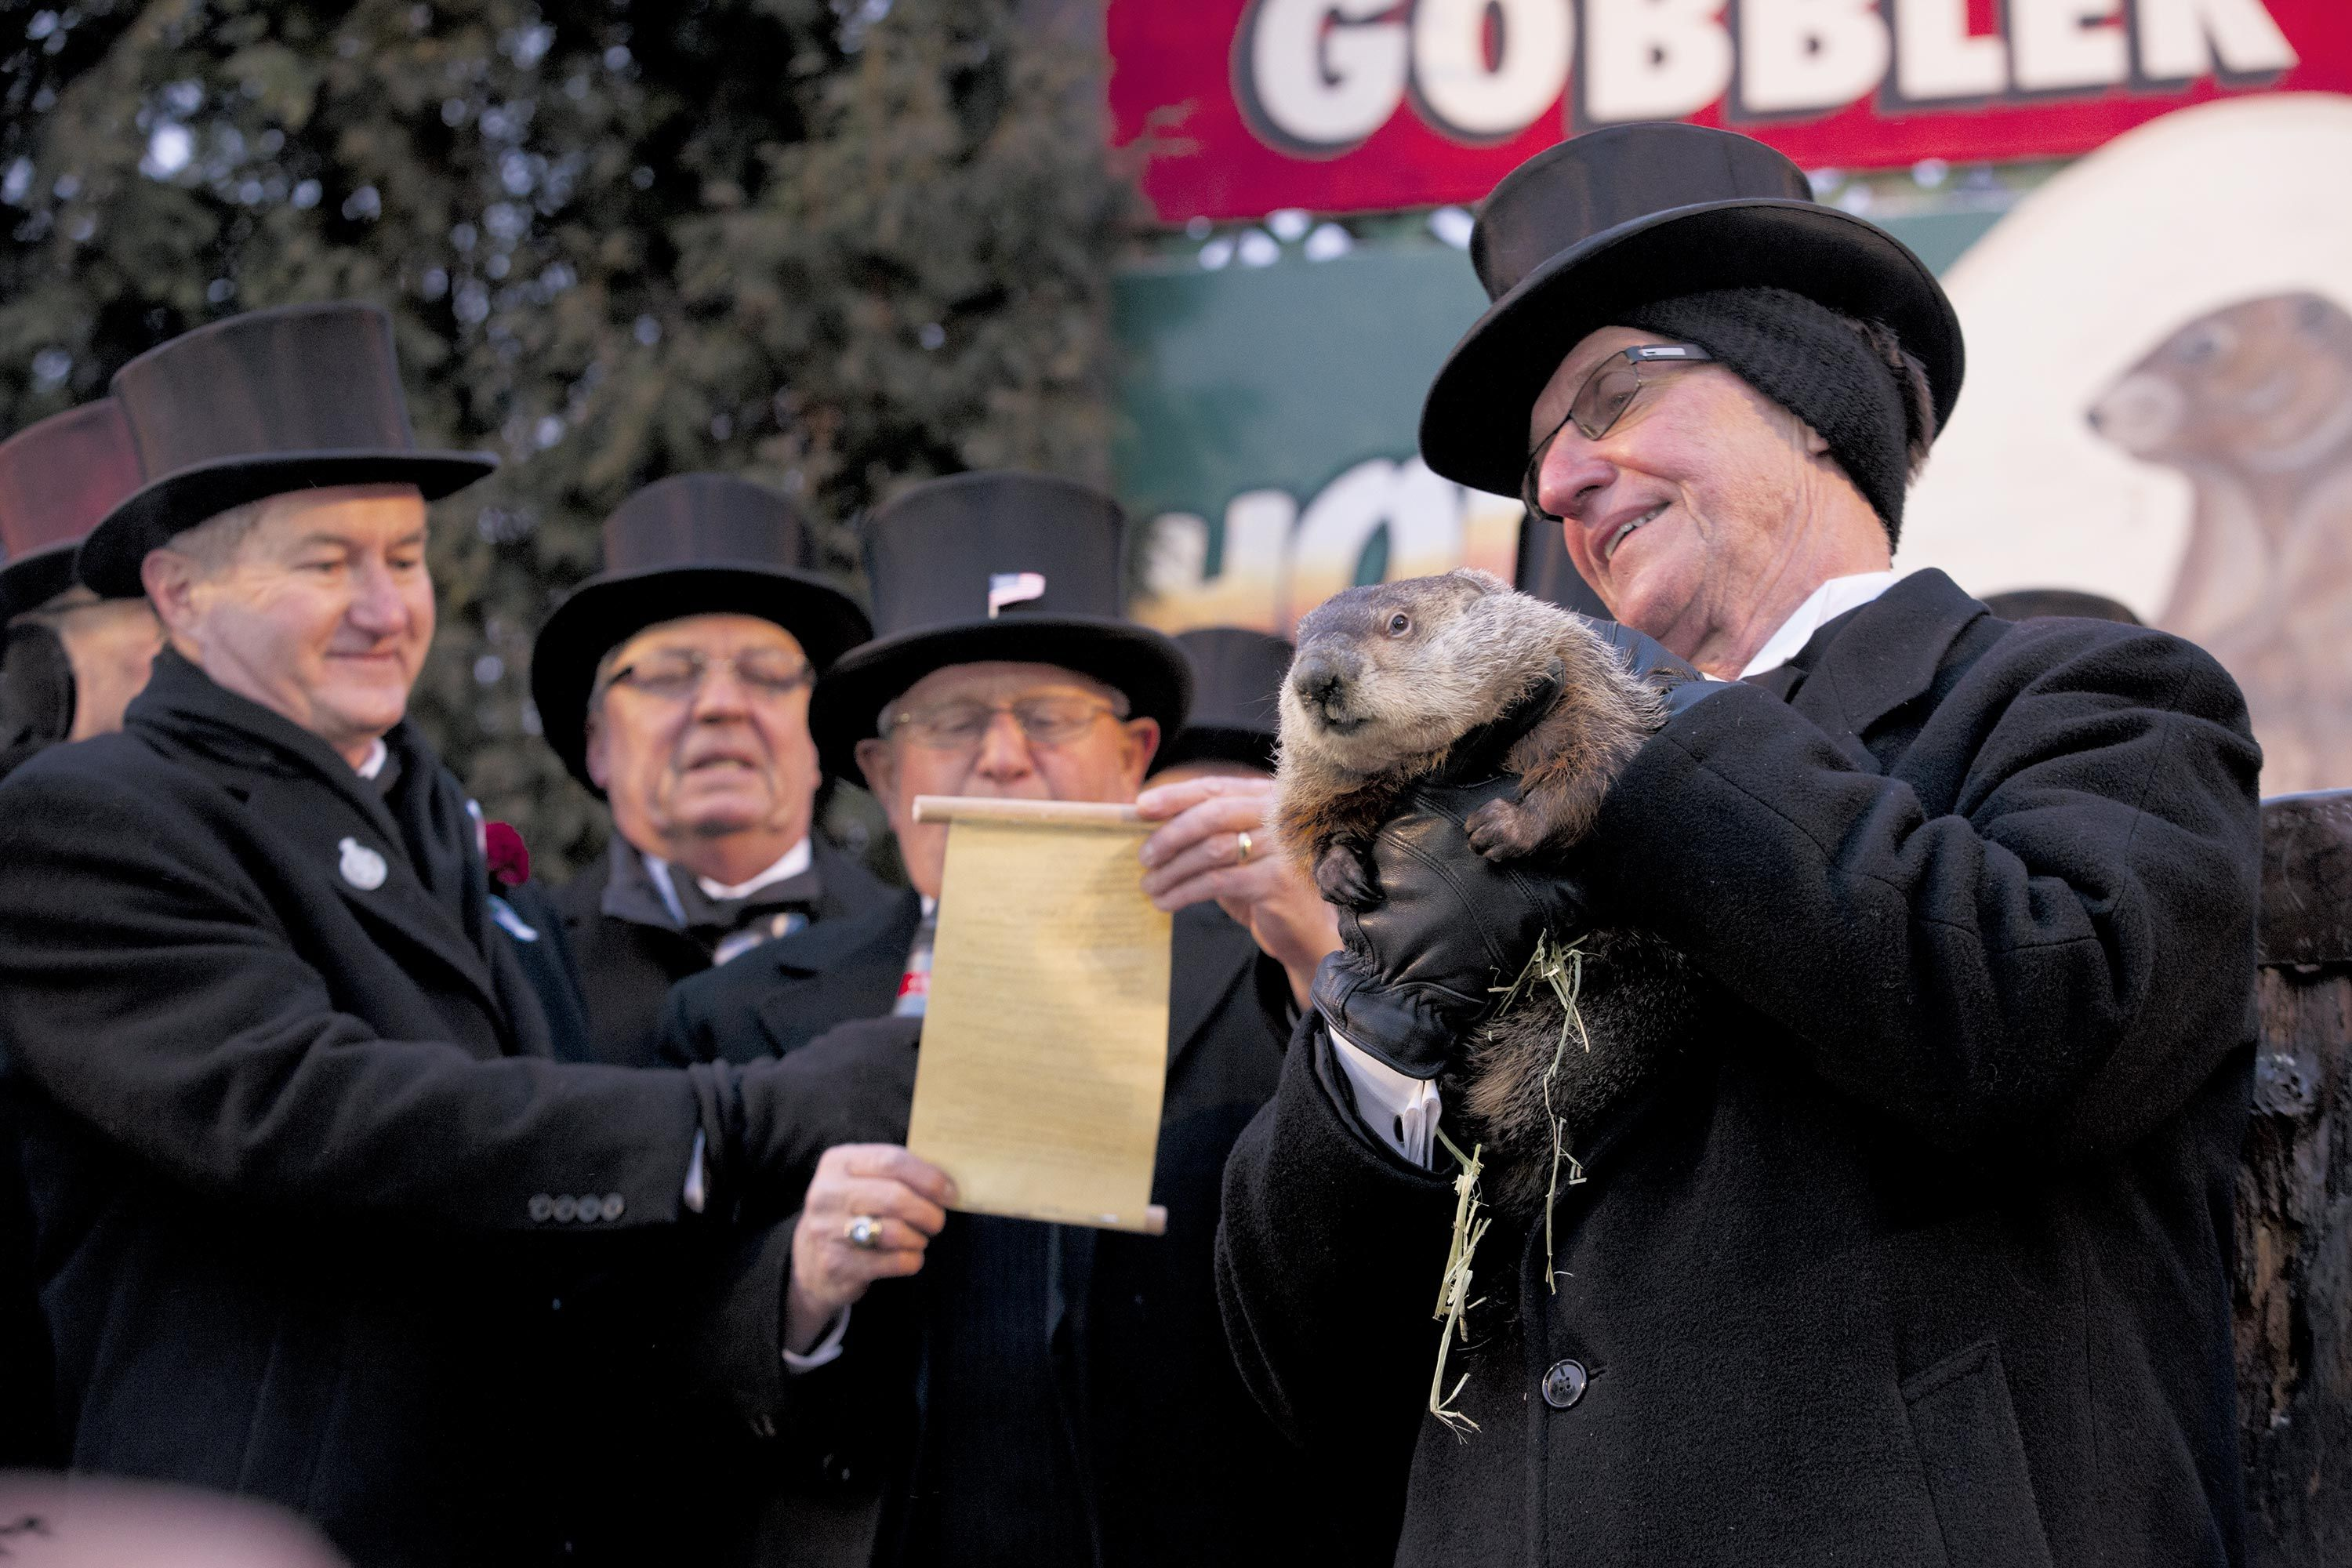 Groundhog Day from Gobbler's Knob in Punxsutawney